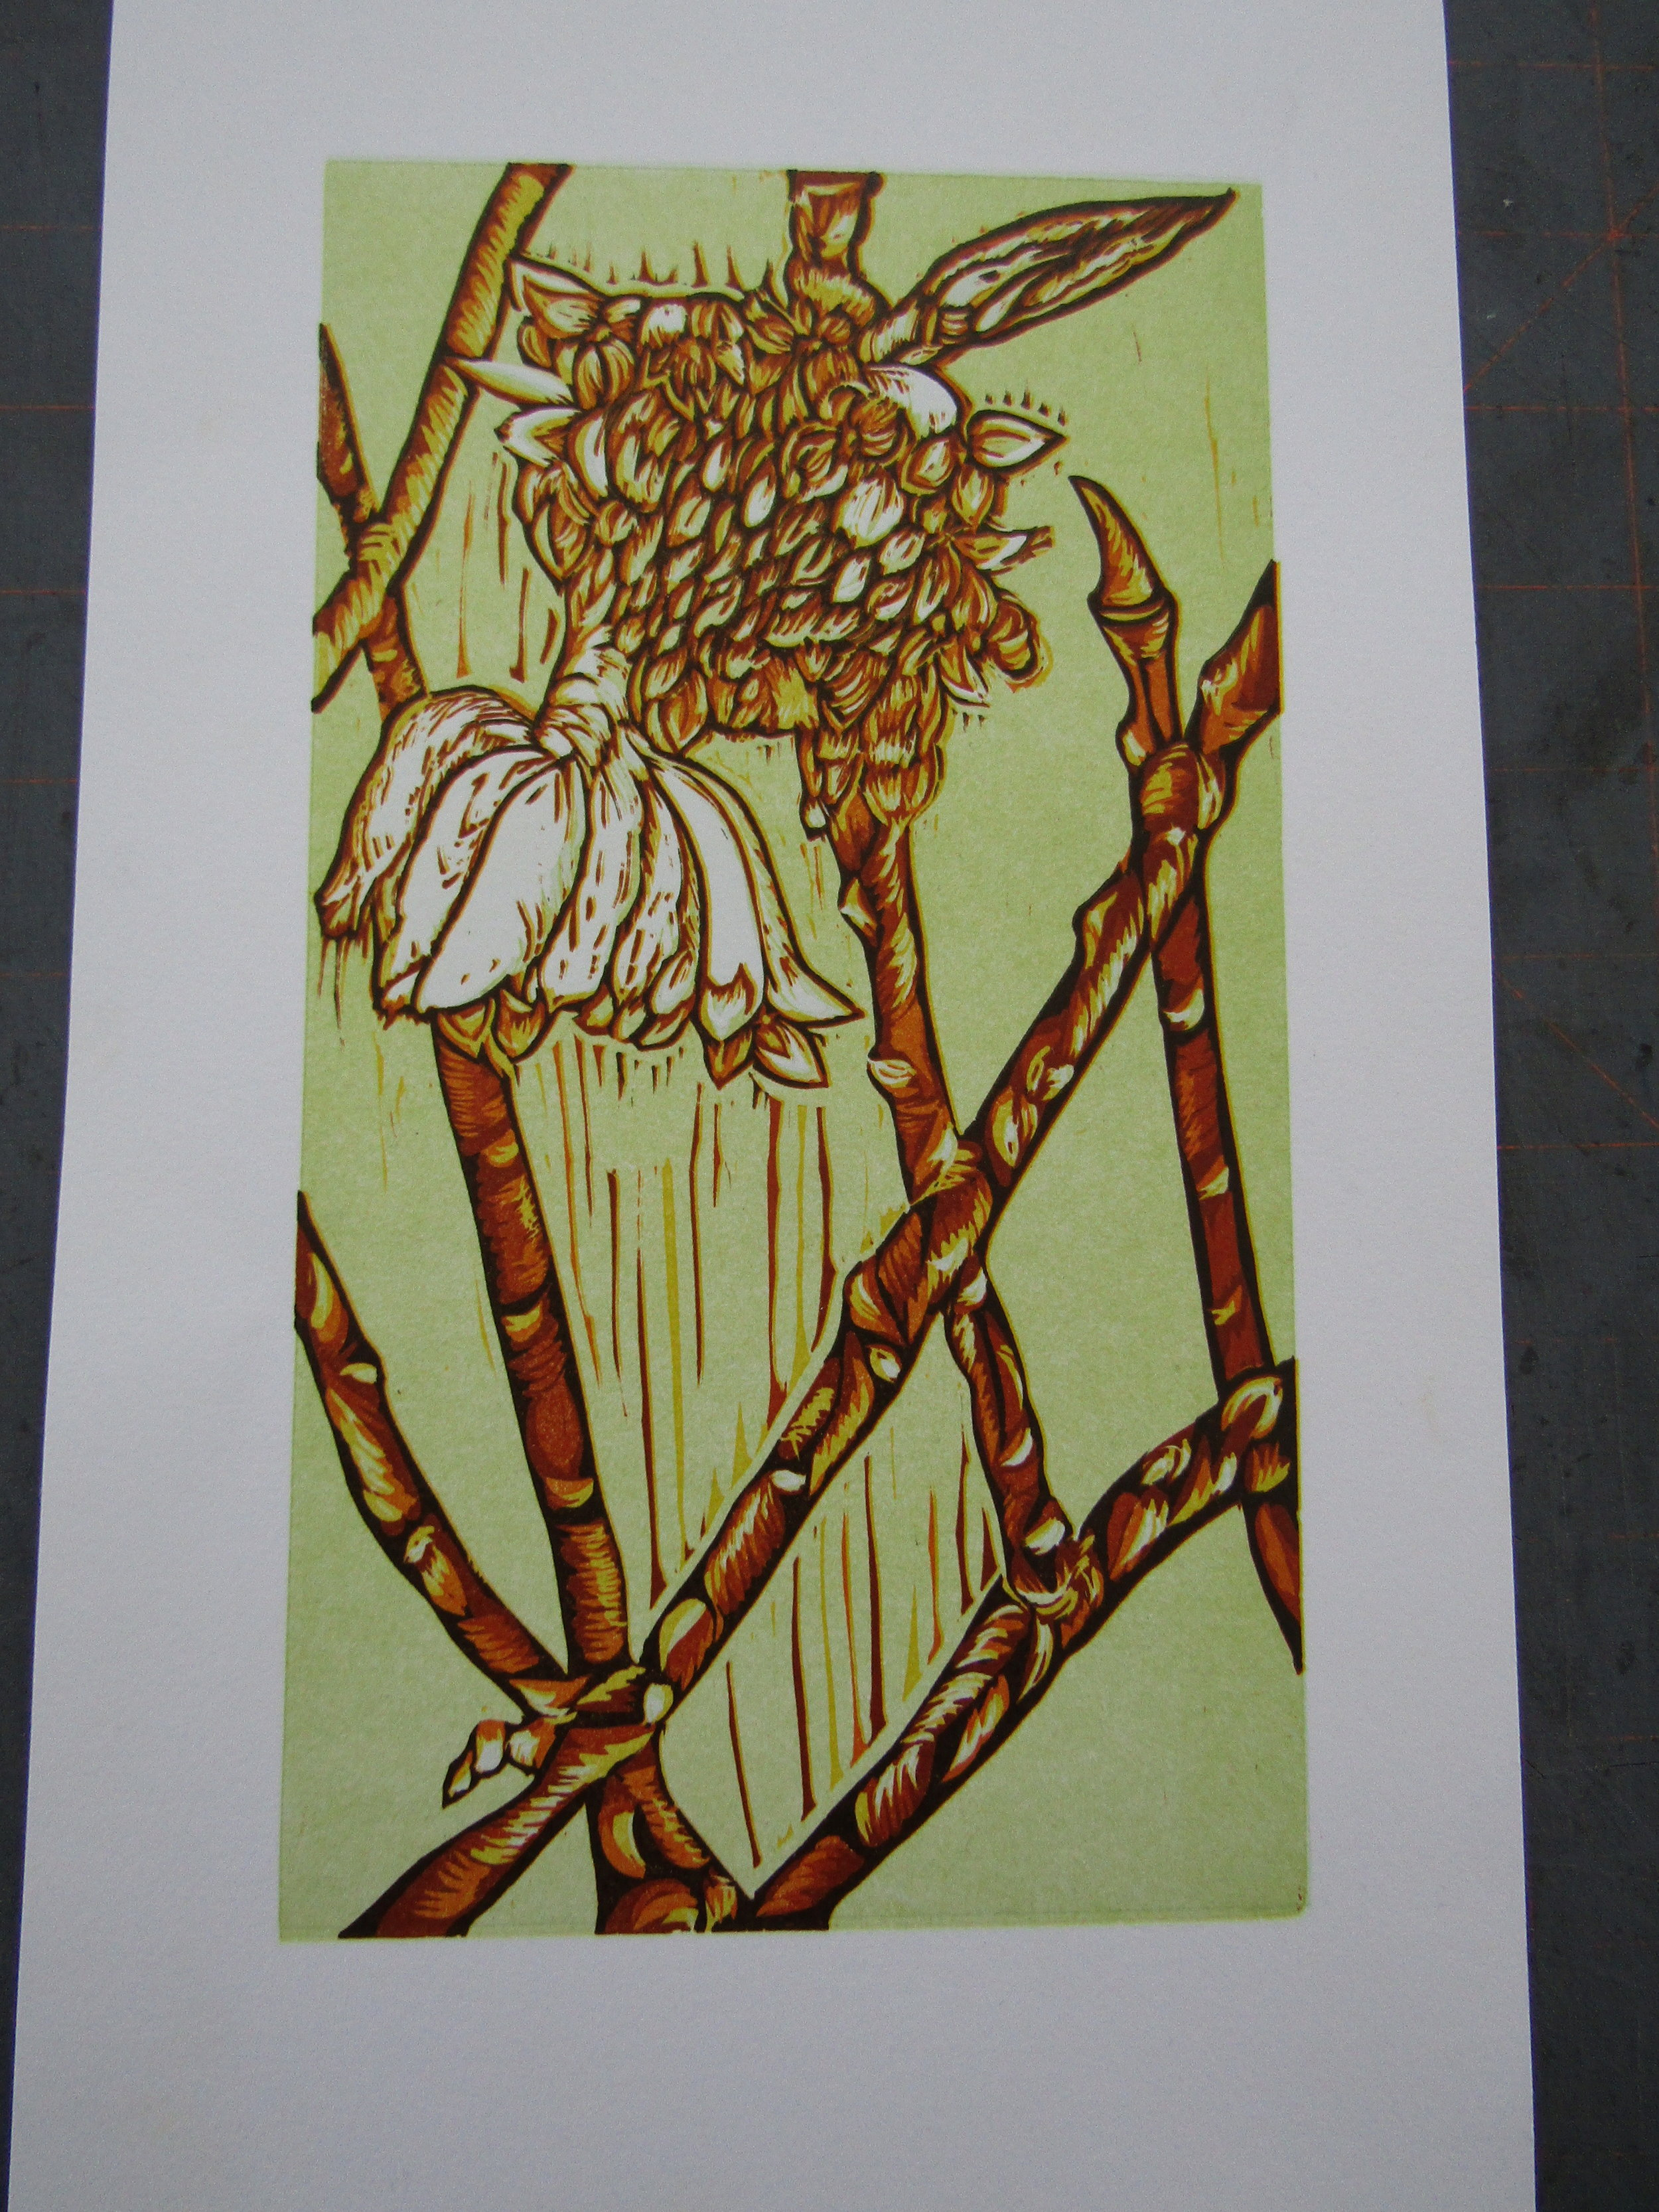 Here is the finished print. I call this one  Winter Edgeworthia . I was particularly pleased with the registration of the layers and color palette.